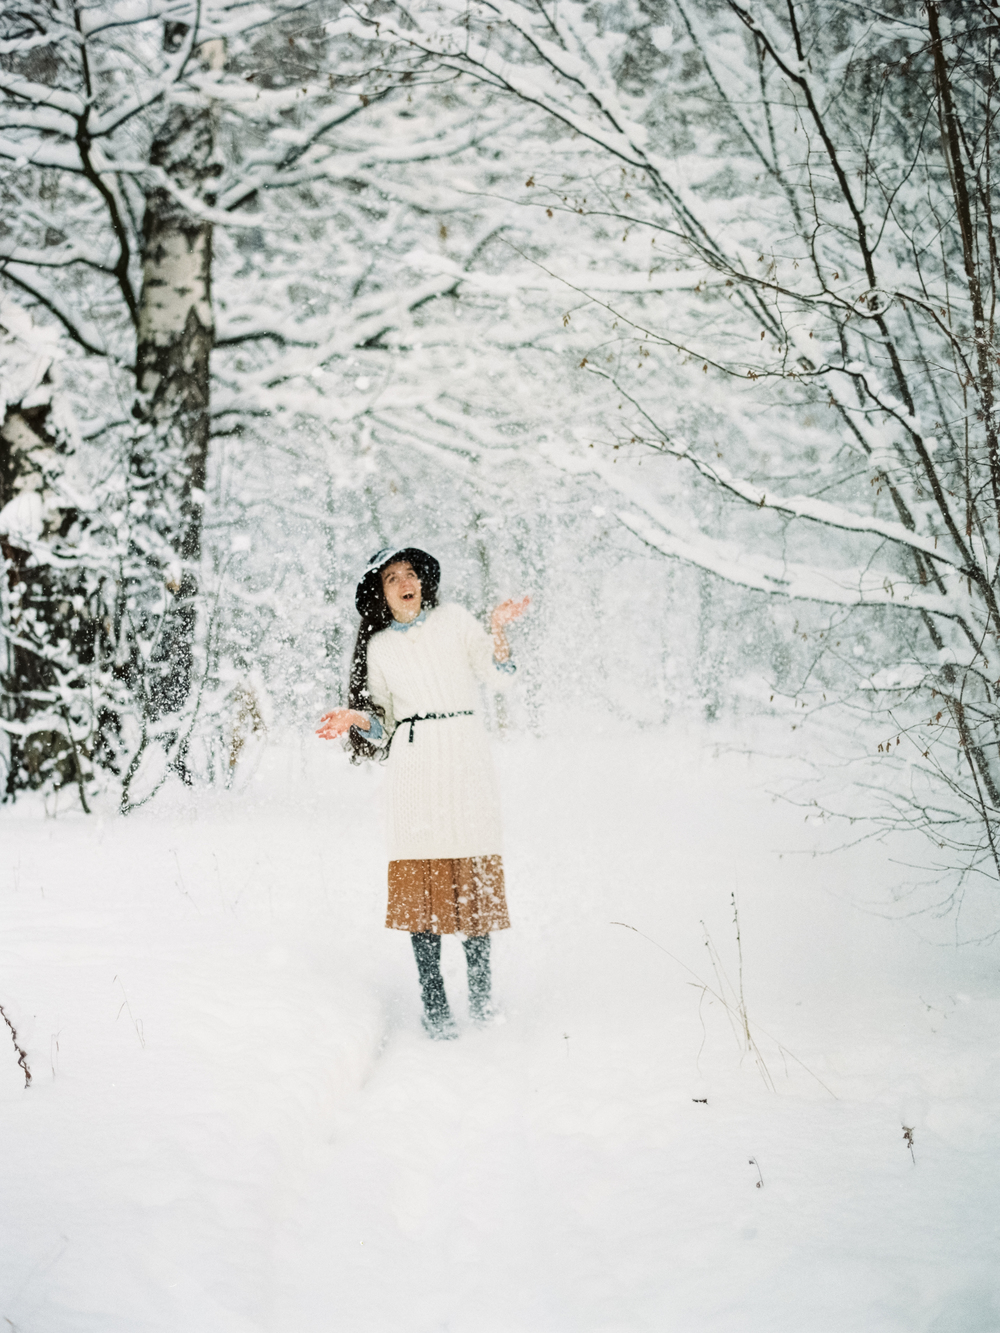 Tamara Gigola Photography winter shoot. Duet Postscriptum. Moscow. Russia. -0005-5.JPG